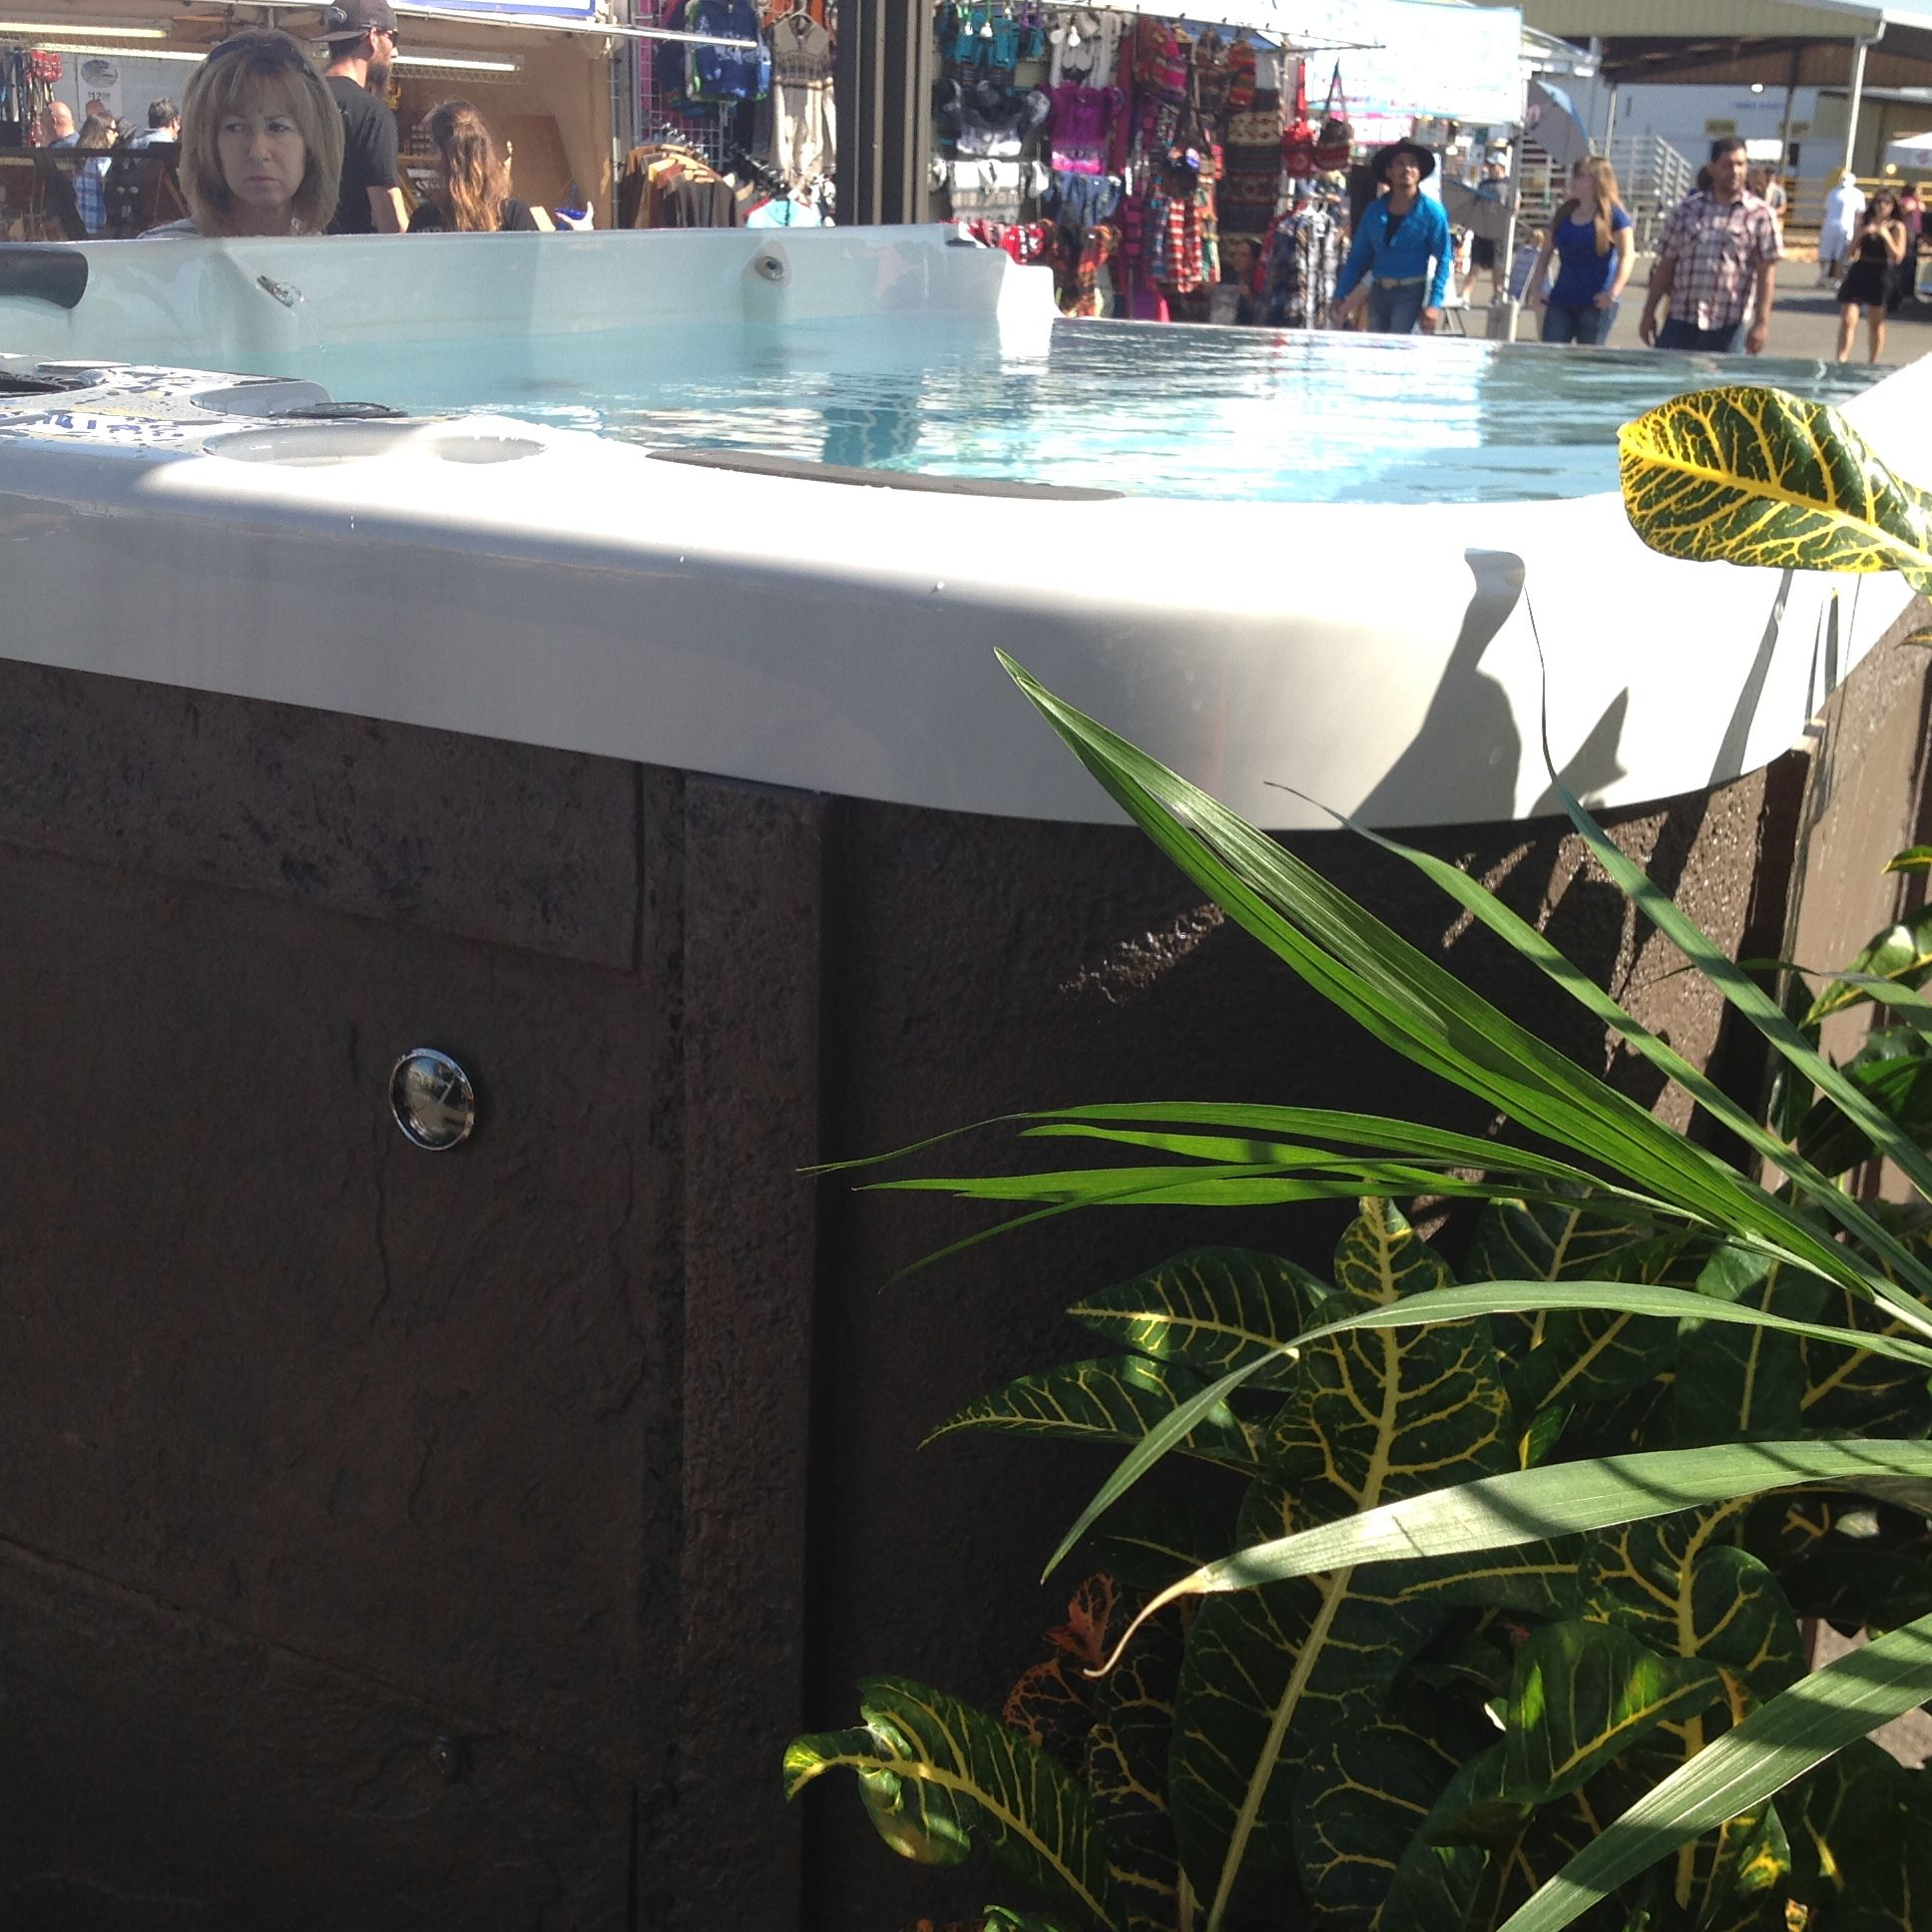 Rich S Is At The Washington State Fair In Puyallup We Re Offering Special Fair Pricing At Our Tent Along With A Great Display Coast Spas Swim Spa Hot Tub